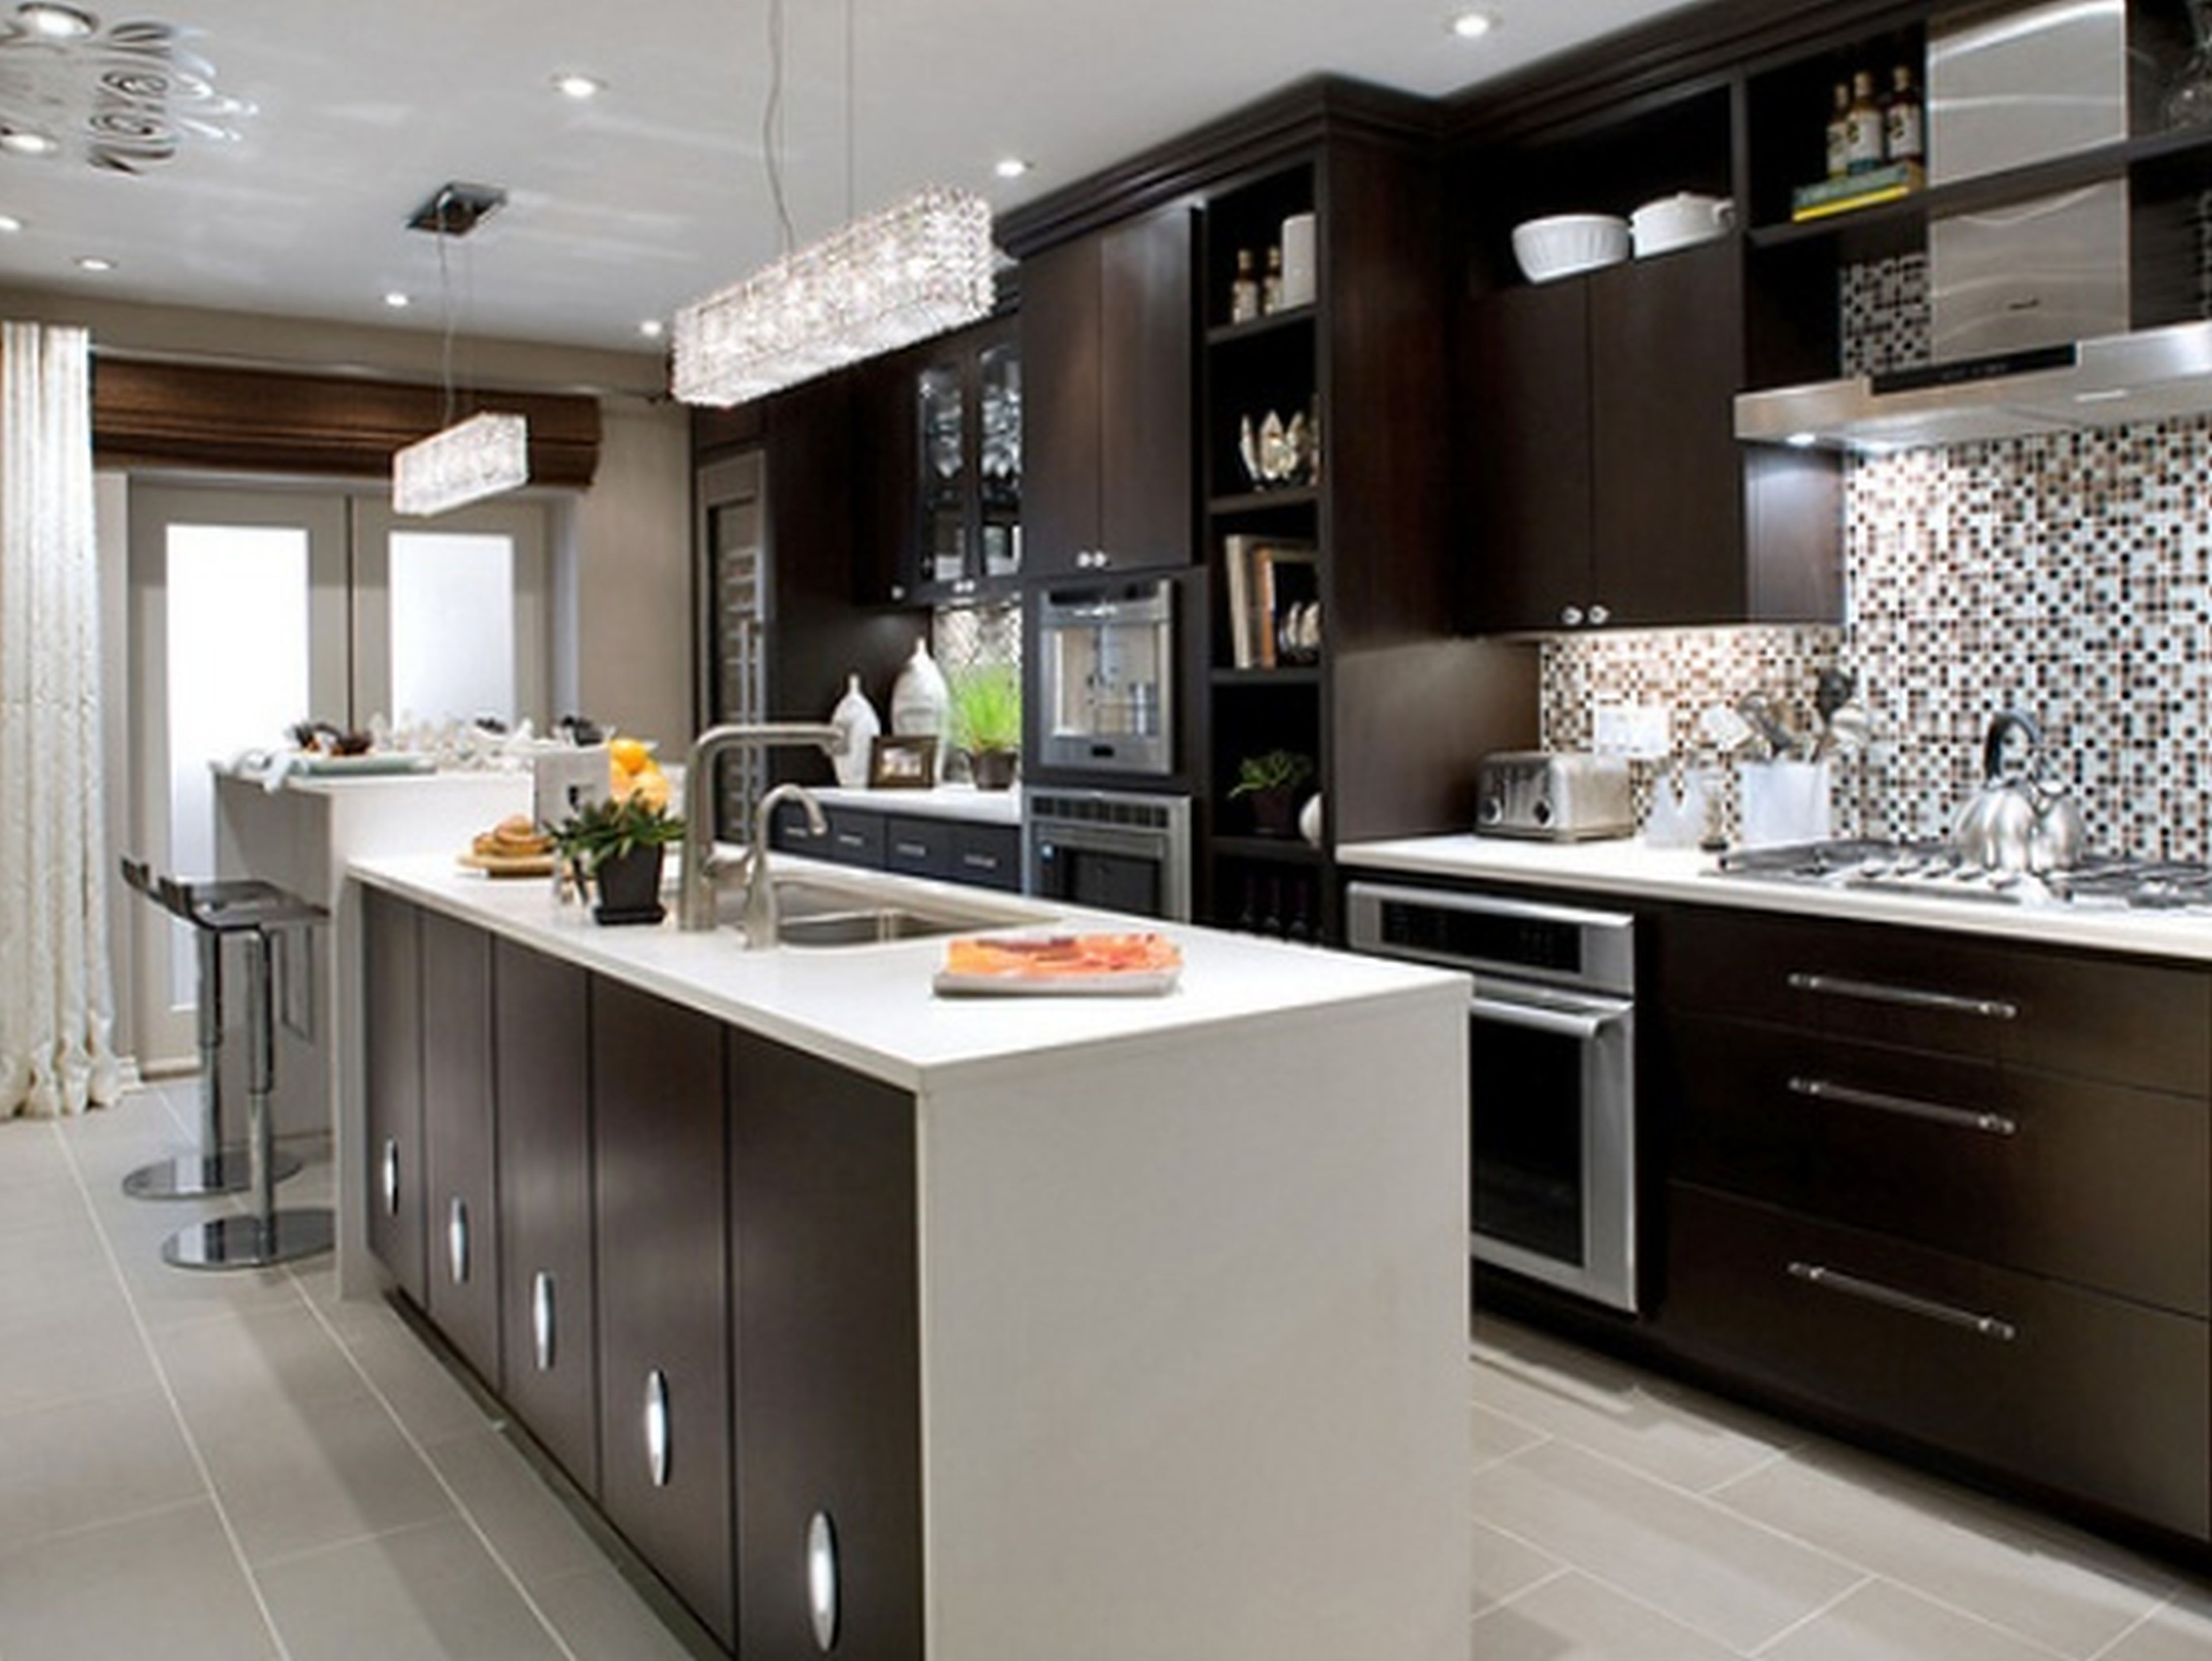 How To Decorate Your Kitchen Cabinets